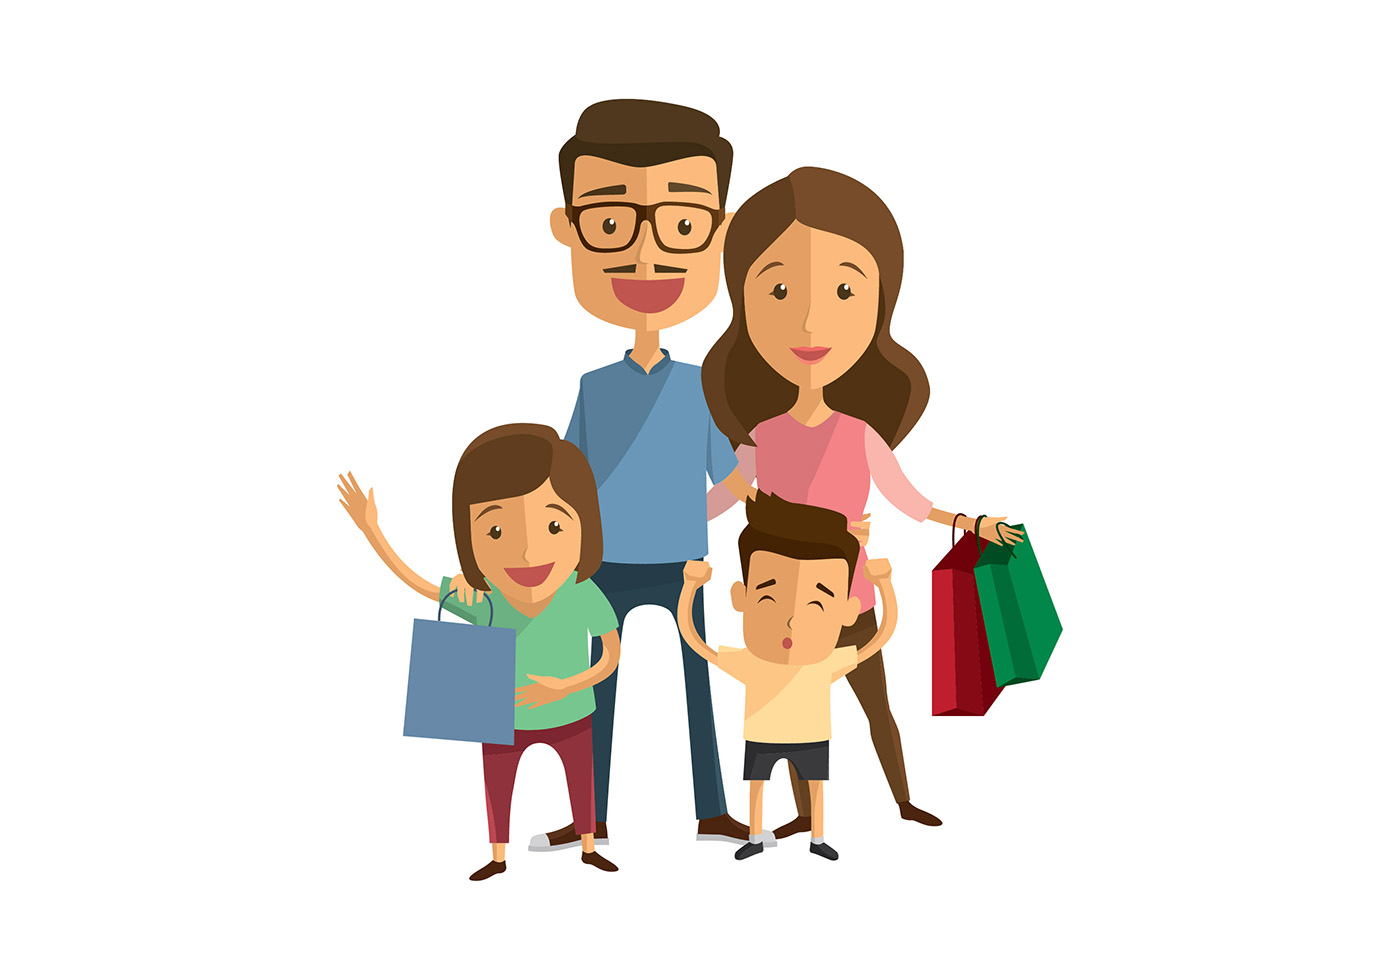 Family Free Vector Art - (8625 Free Downloads)